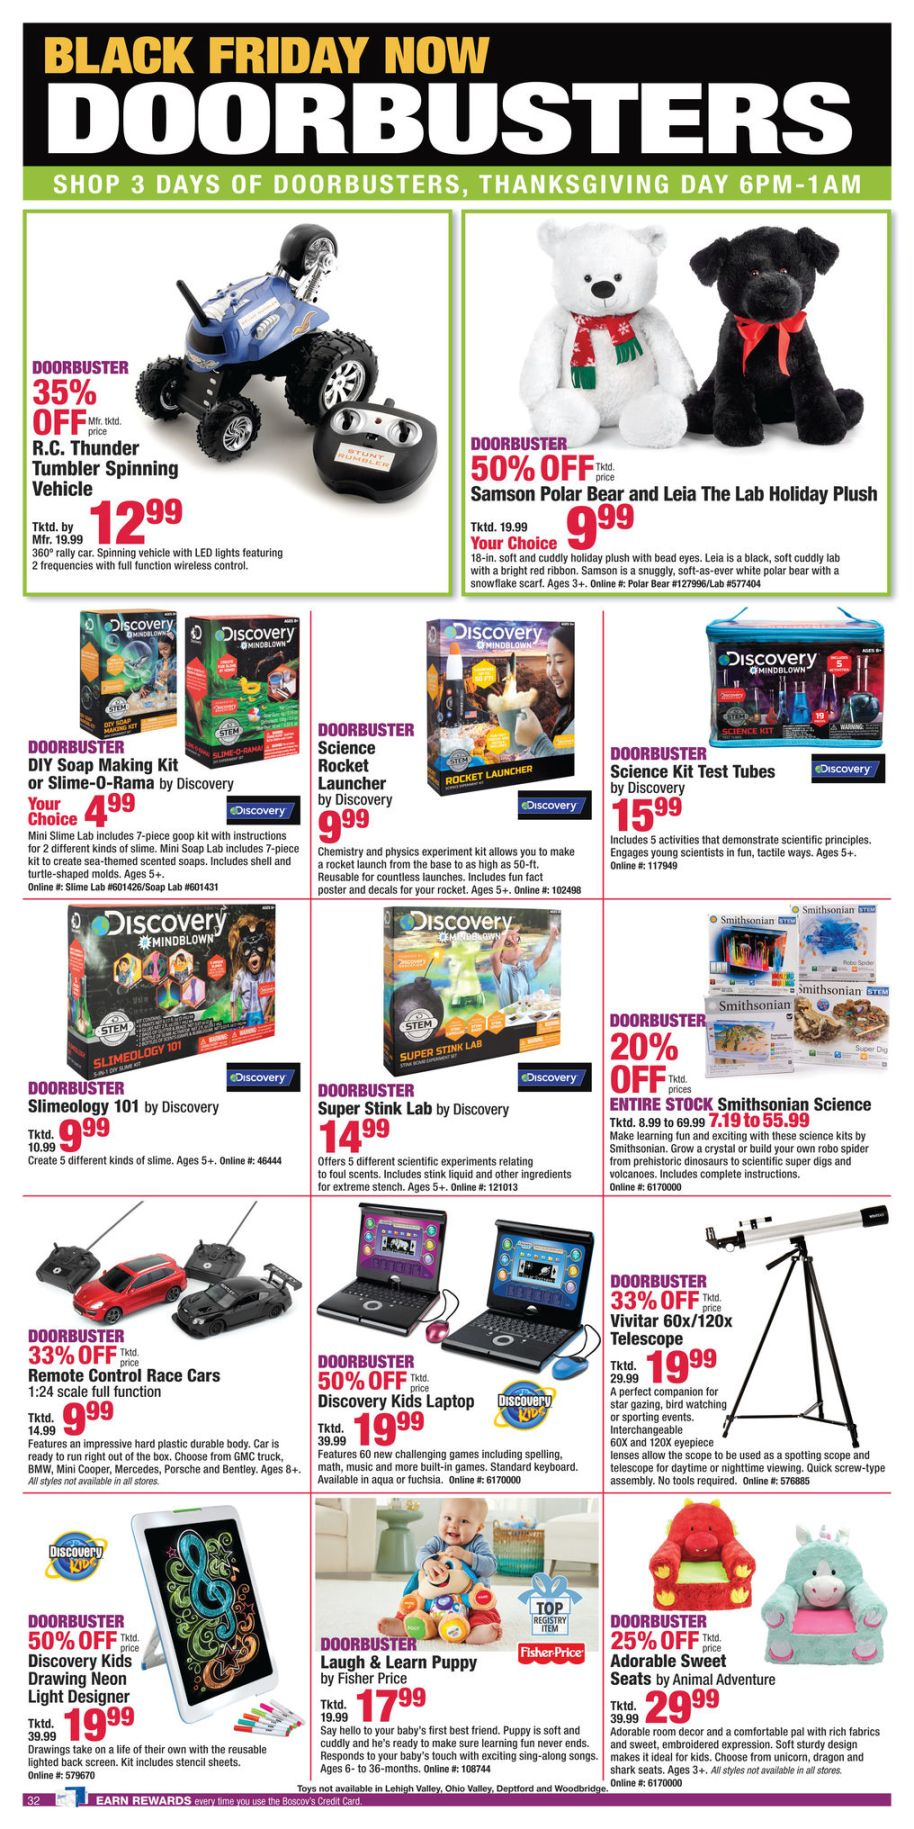 graphic about Boscovs Coupons Printable identified as Boscovs Black Friday Commercials Revenue Promotions Doorbusters 2018